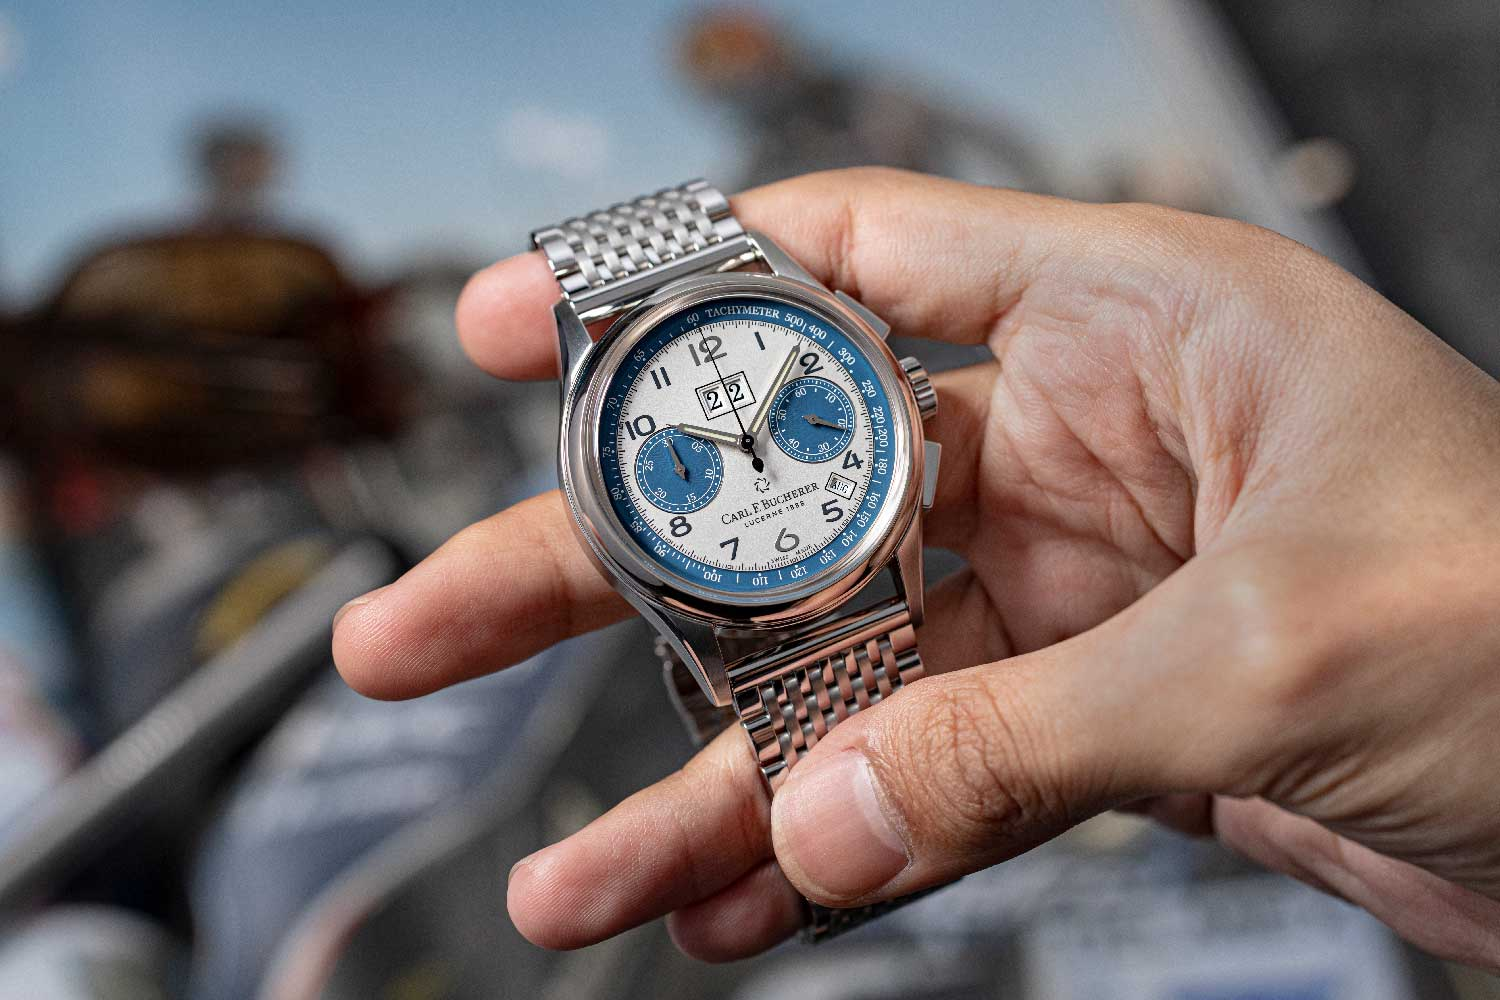 The dial shares a couple of elements with the Lincoln, including blue and chrome elements. The teal blue of the car is picked up on the subdials, running seconds, chronograph minutes and the tachymeter scale. (© Revolution)